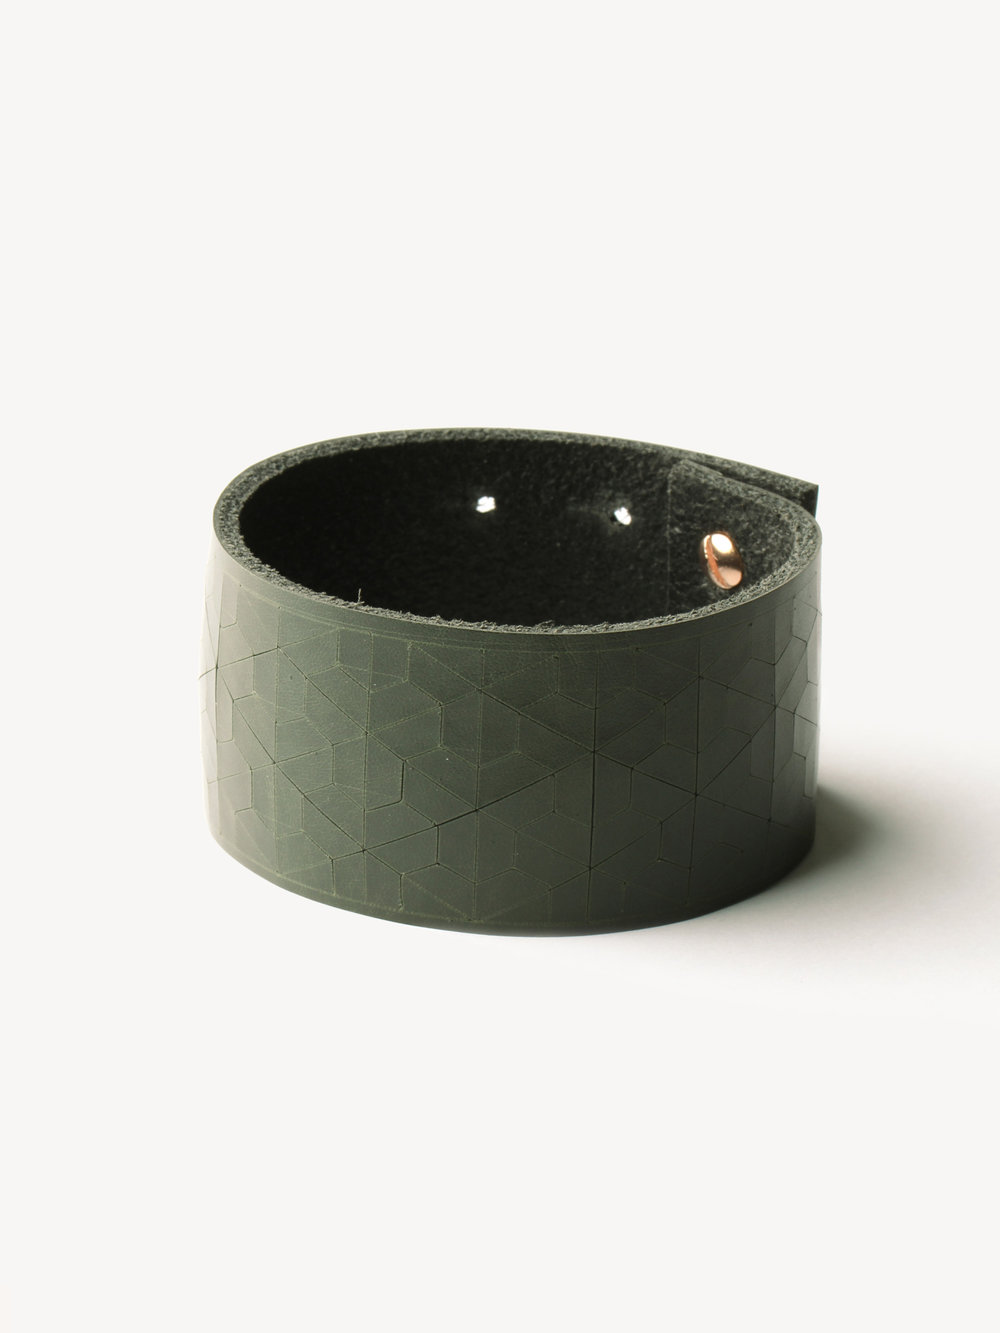 Leder-Armband, schmal in dunkelgrün/ Leather bracelet, big in dark green